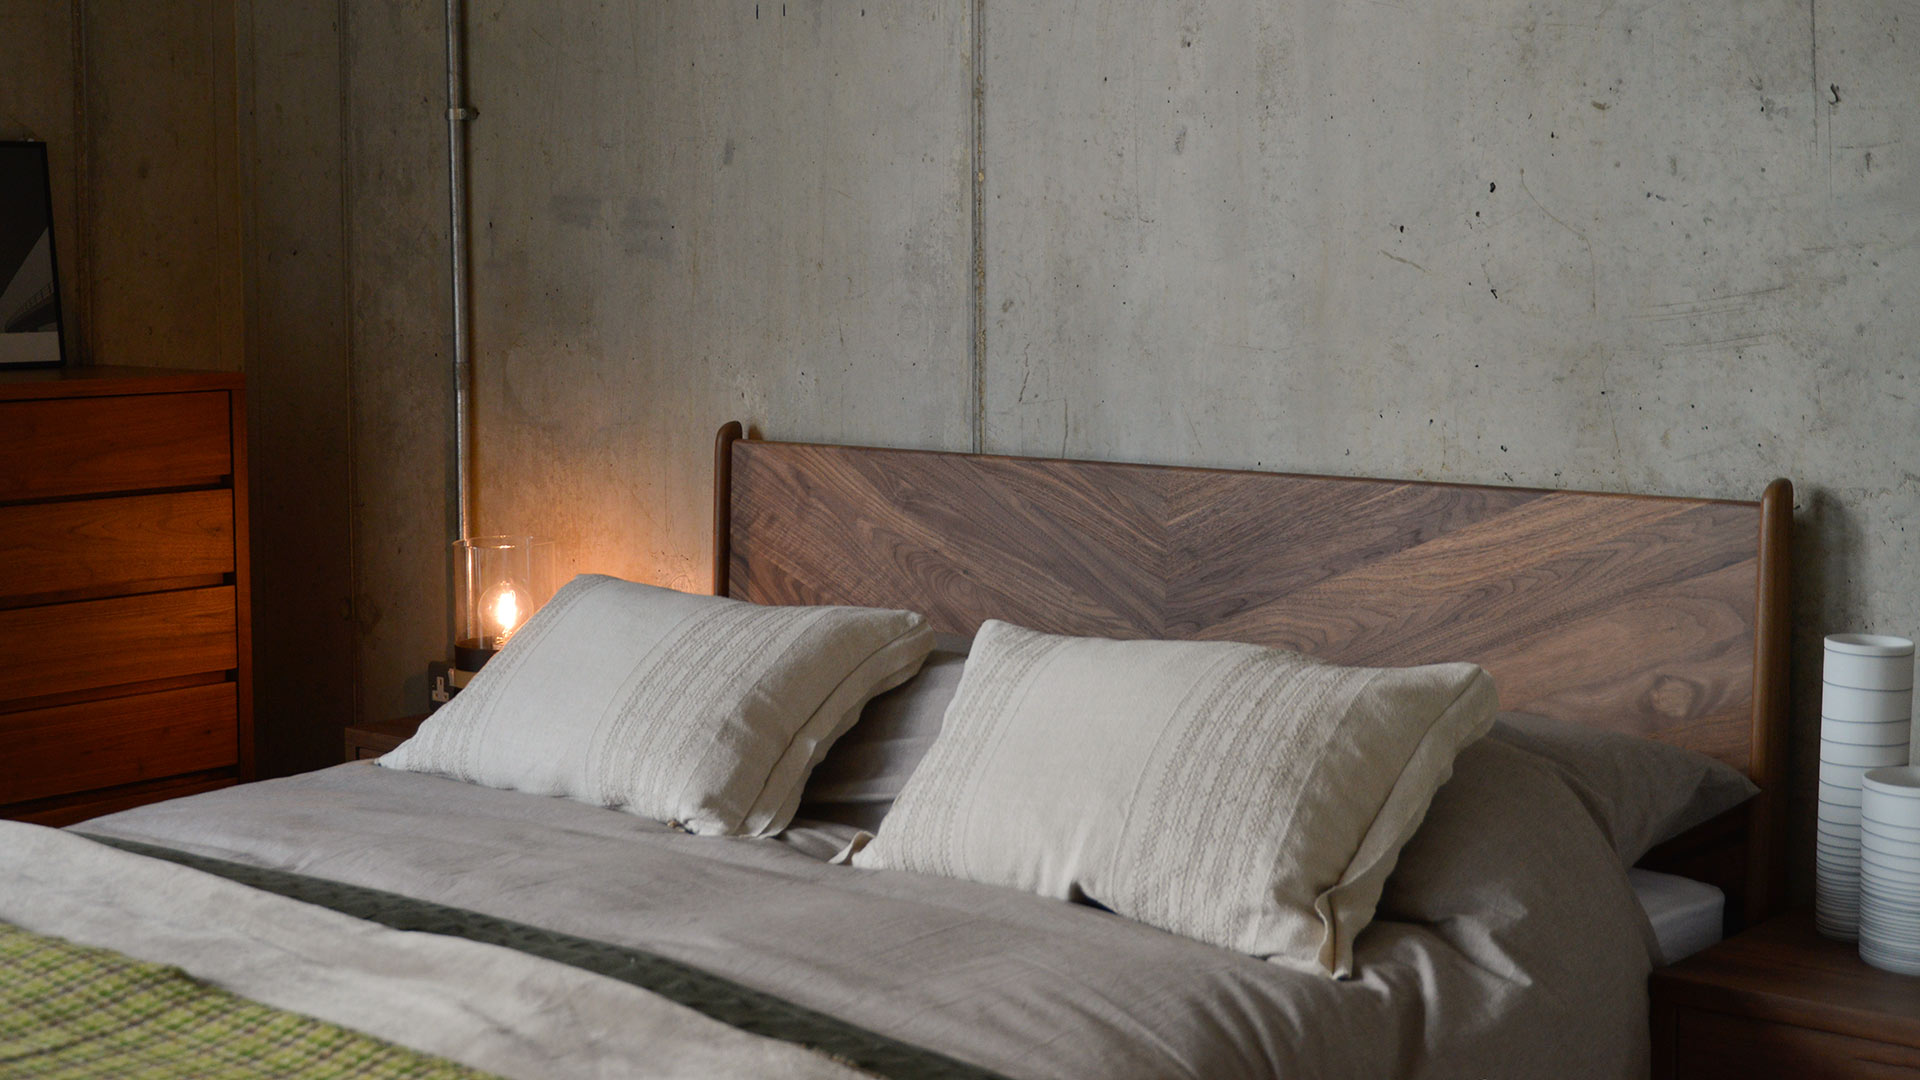 A view of the Walnut Hoxton bed chevron headboard design.